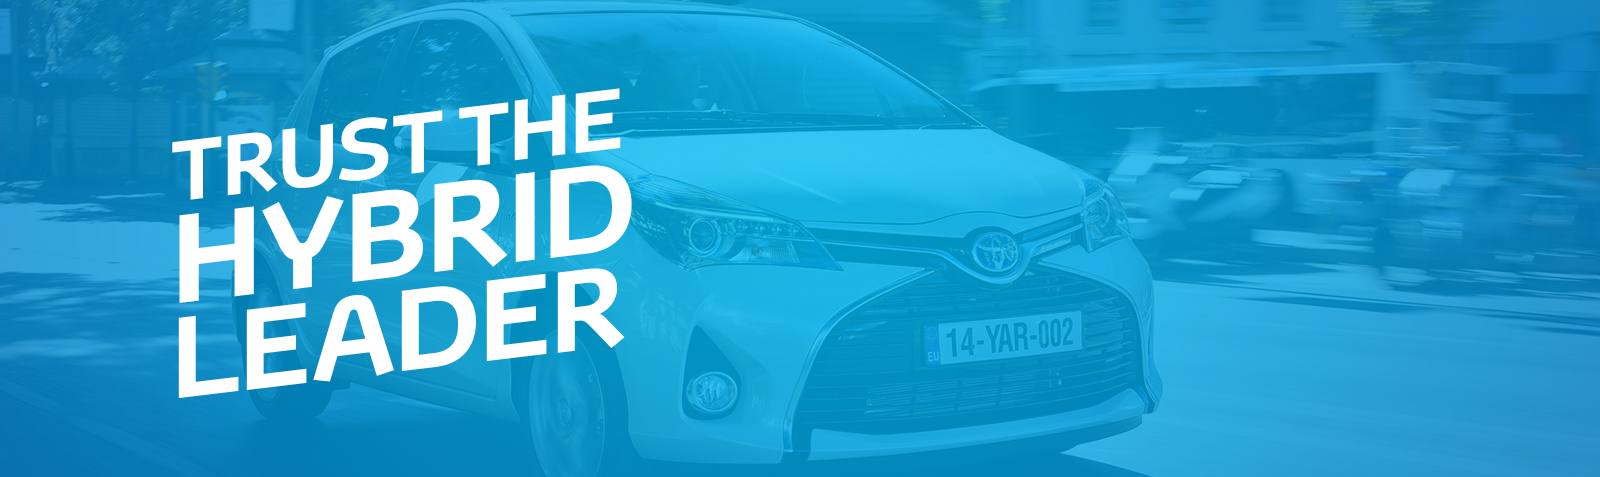 Hybrid is not new to Toyota with over 20 years experience ...